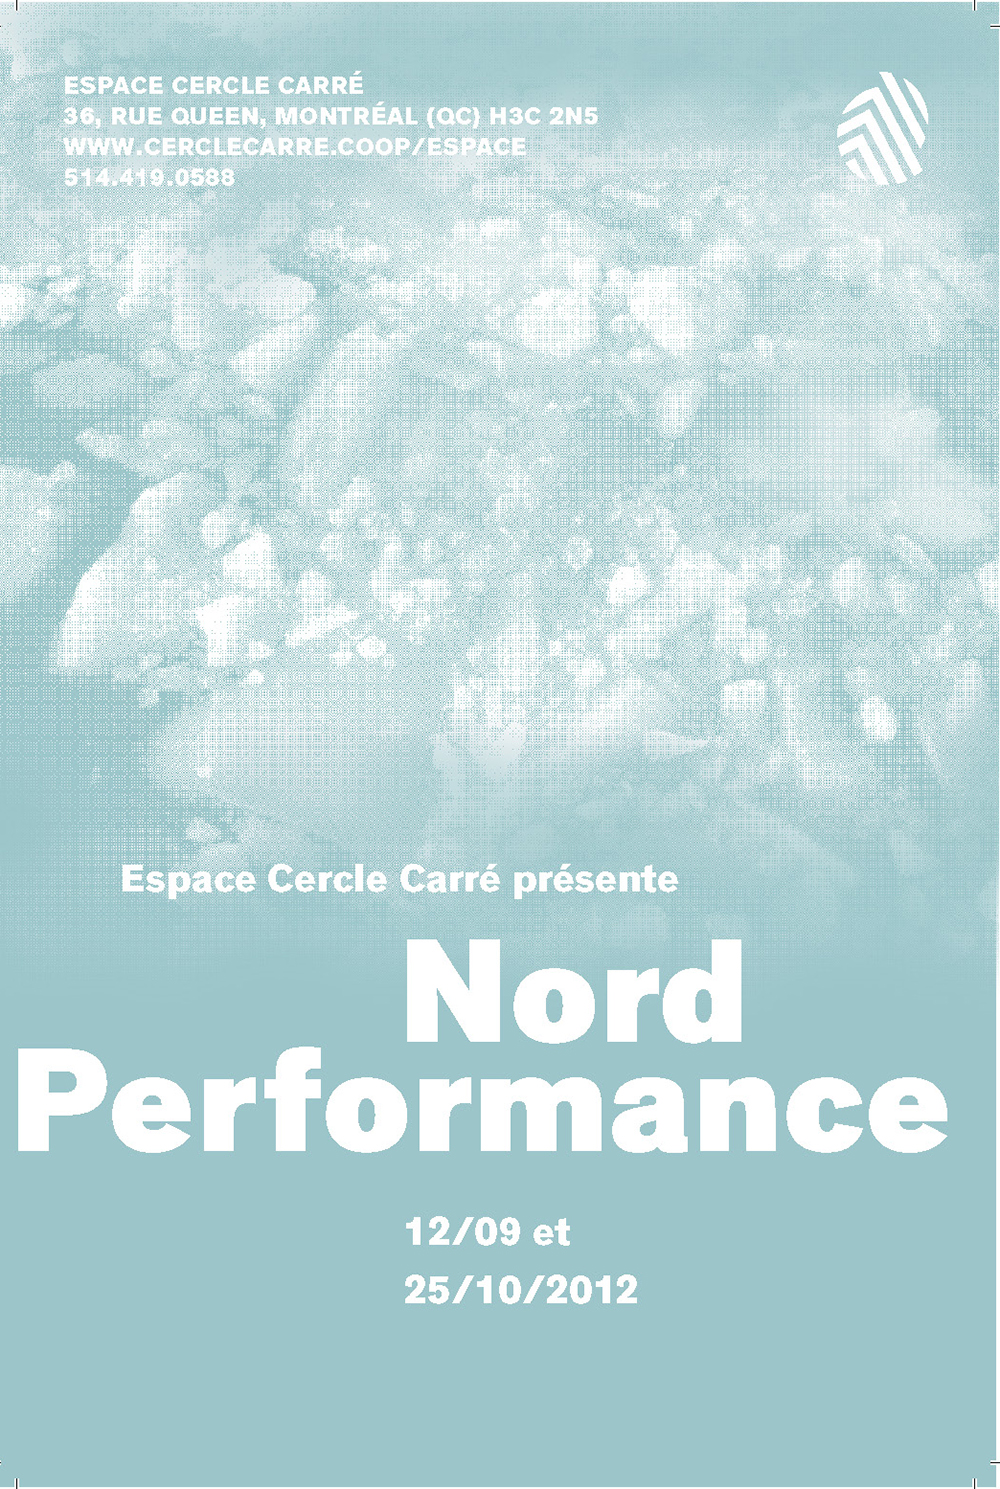 nord-performance3_page_1